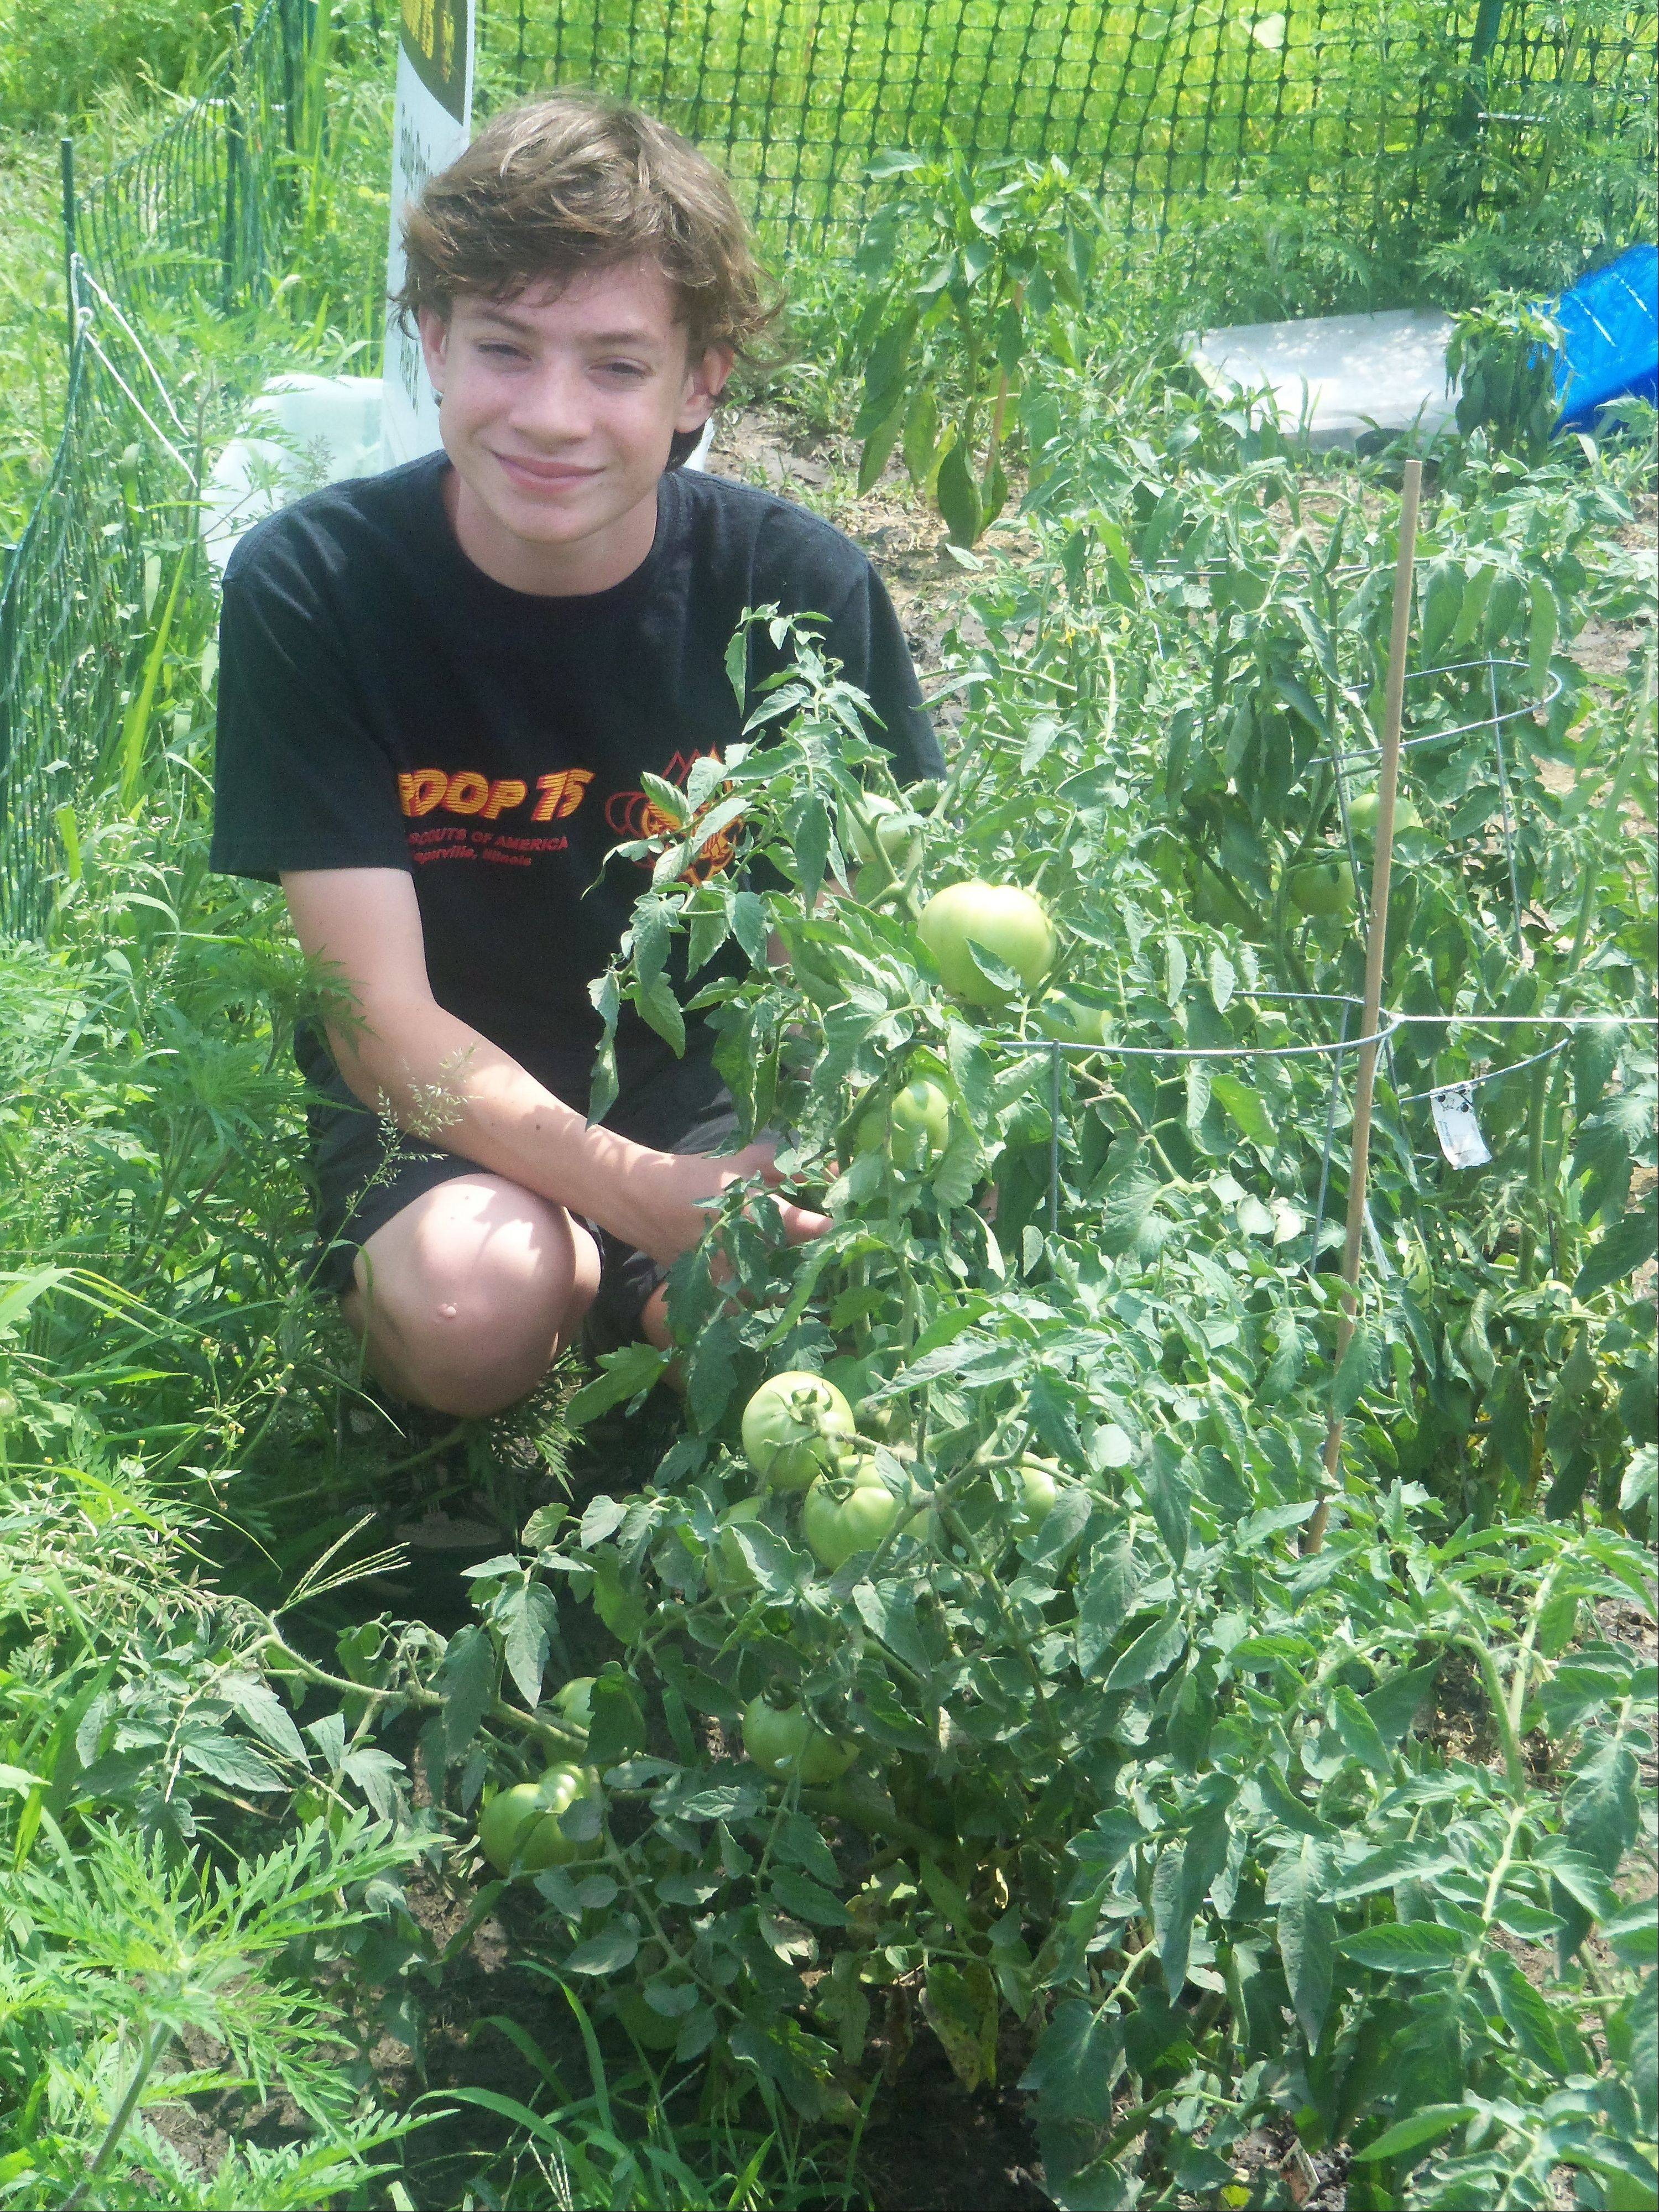 Boy Scout Alex Boyle of Naperville planted a garden to grow produce for the Loaves & Fishes Food Pantry in Naperville for his Eagle Scout project.